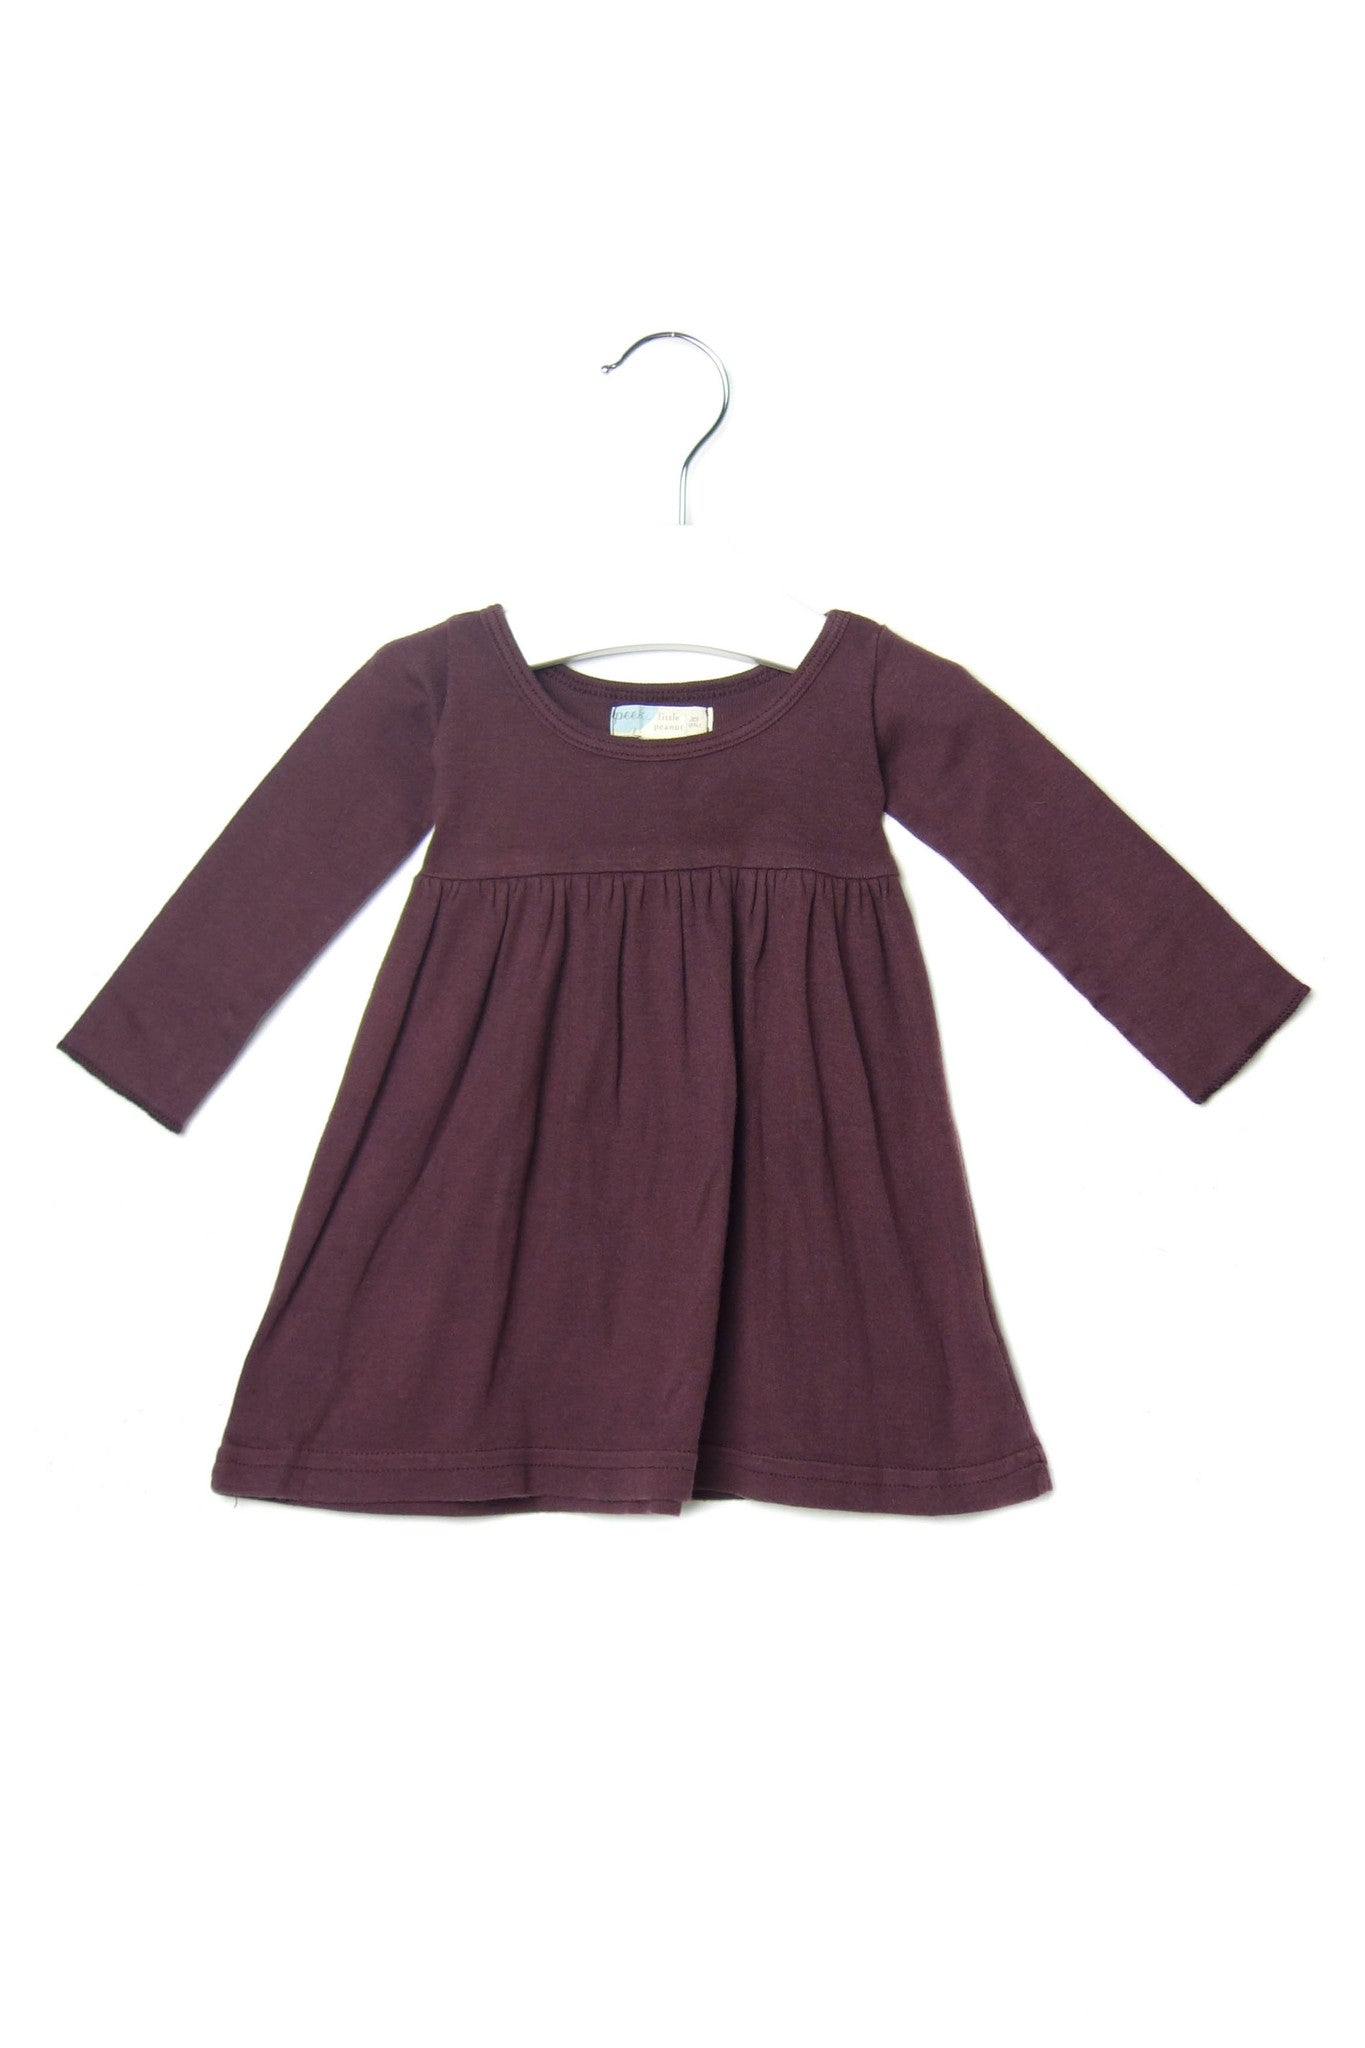 10001415~Dress 0-3M, Peek at Retykle - Online Baby & Kids Clothing Up to 90% Off